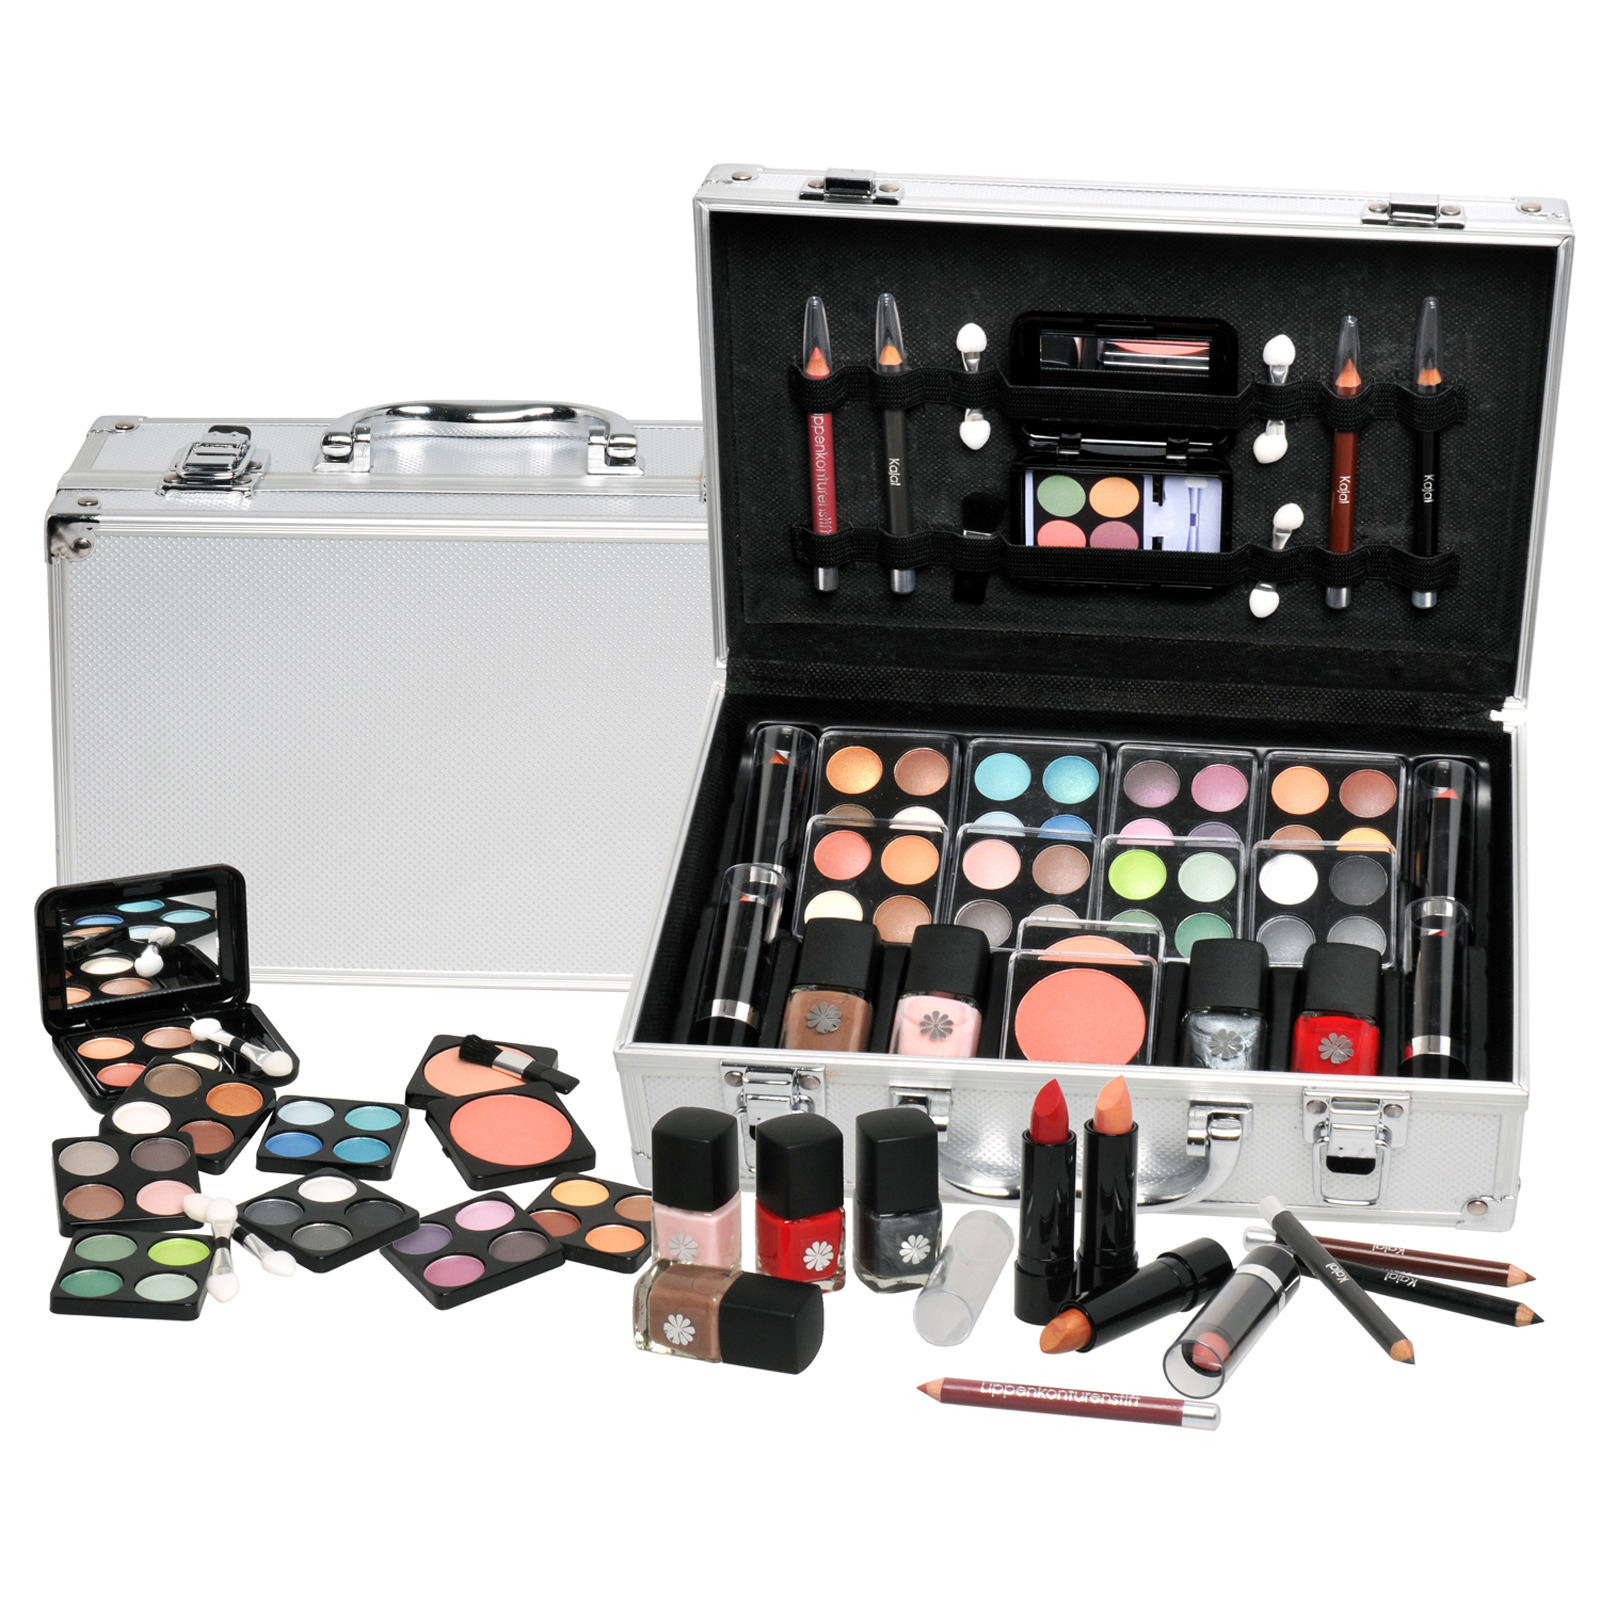 professional vanity case cosmetic make up urban beauty box travel carry gift set ebay. Black Bedroom Furniture Sets. Home Design Ideas